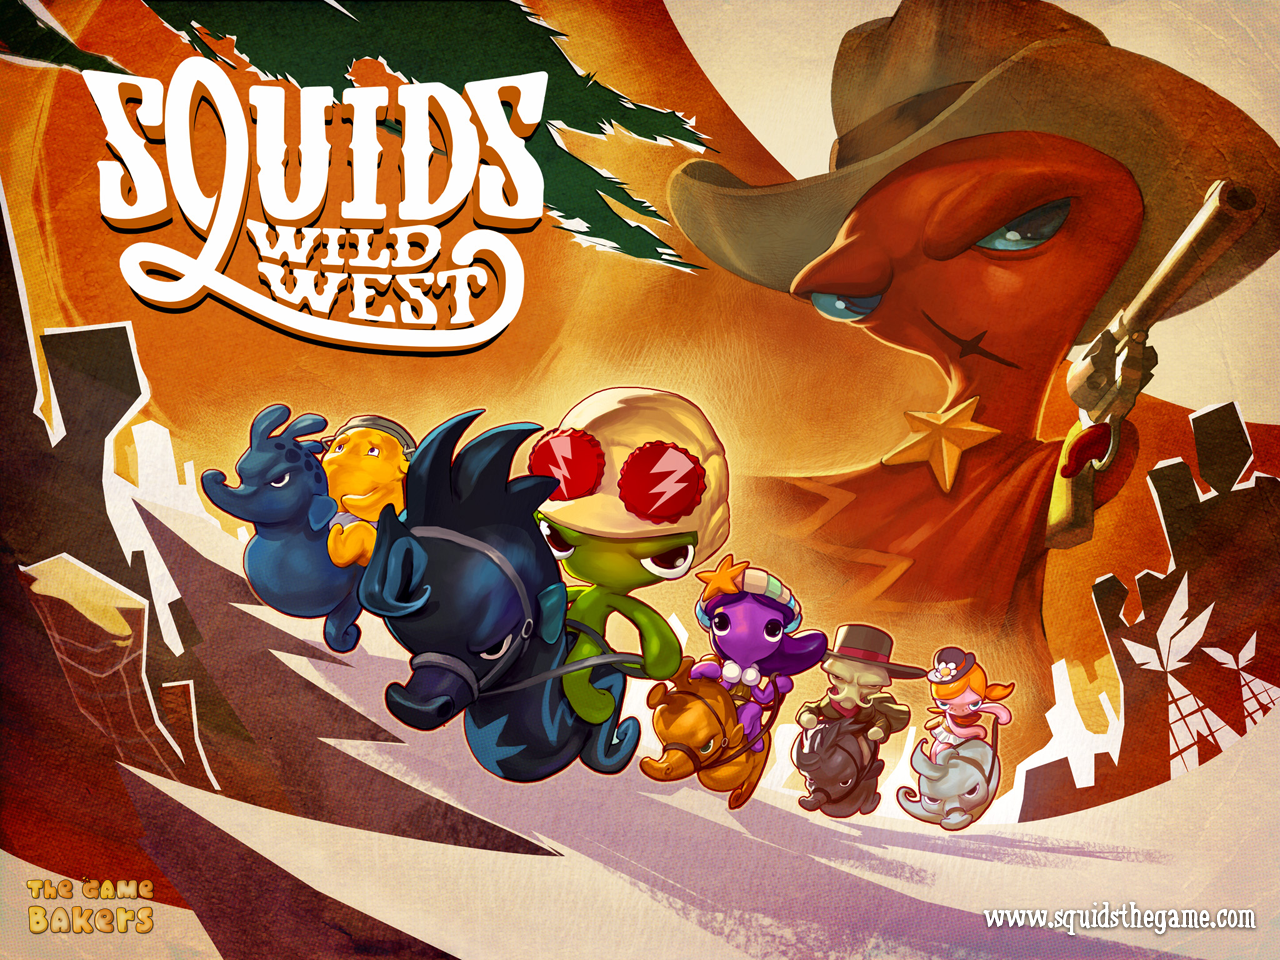 SQUIDS Wild West Artwork